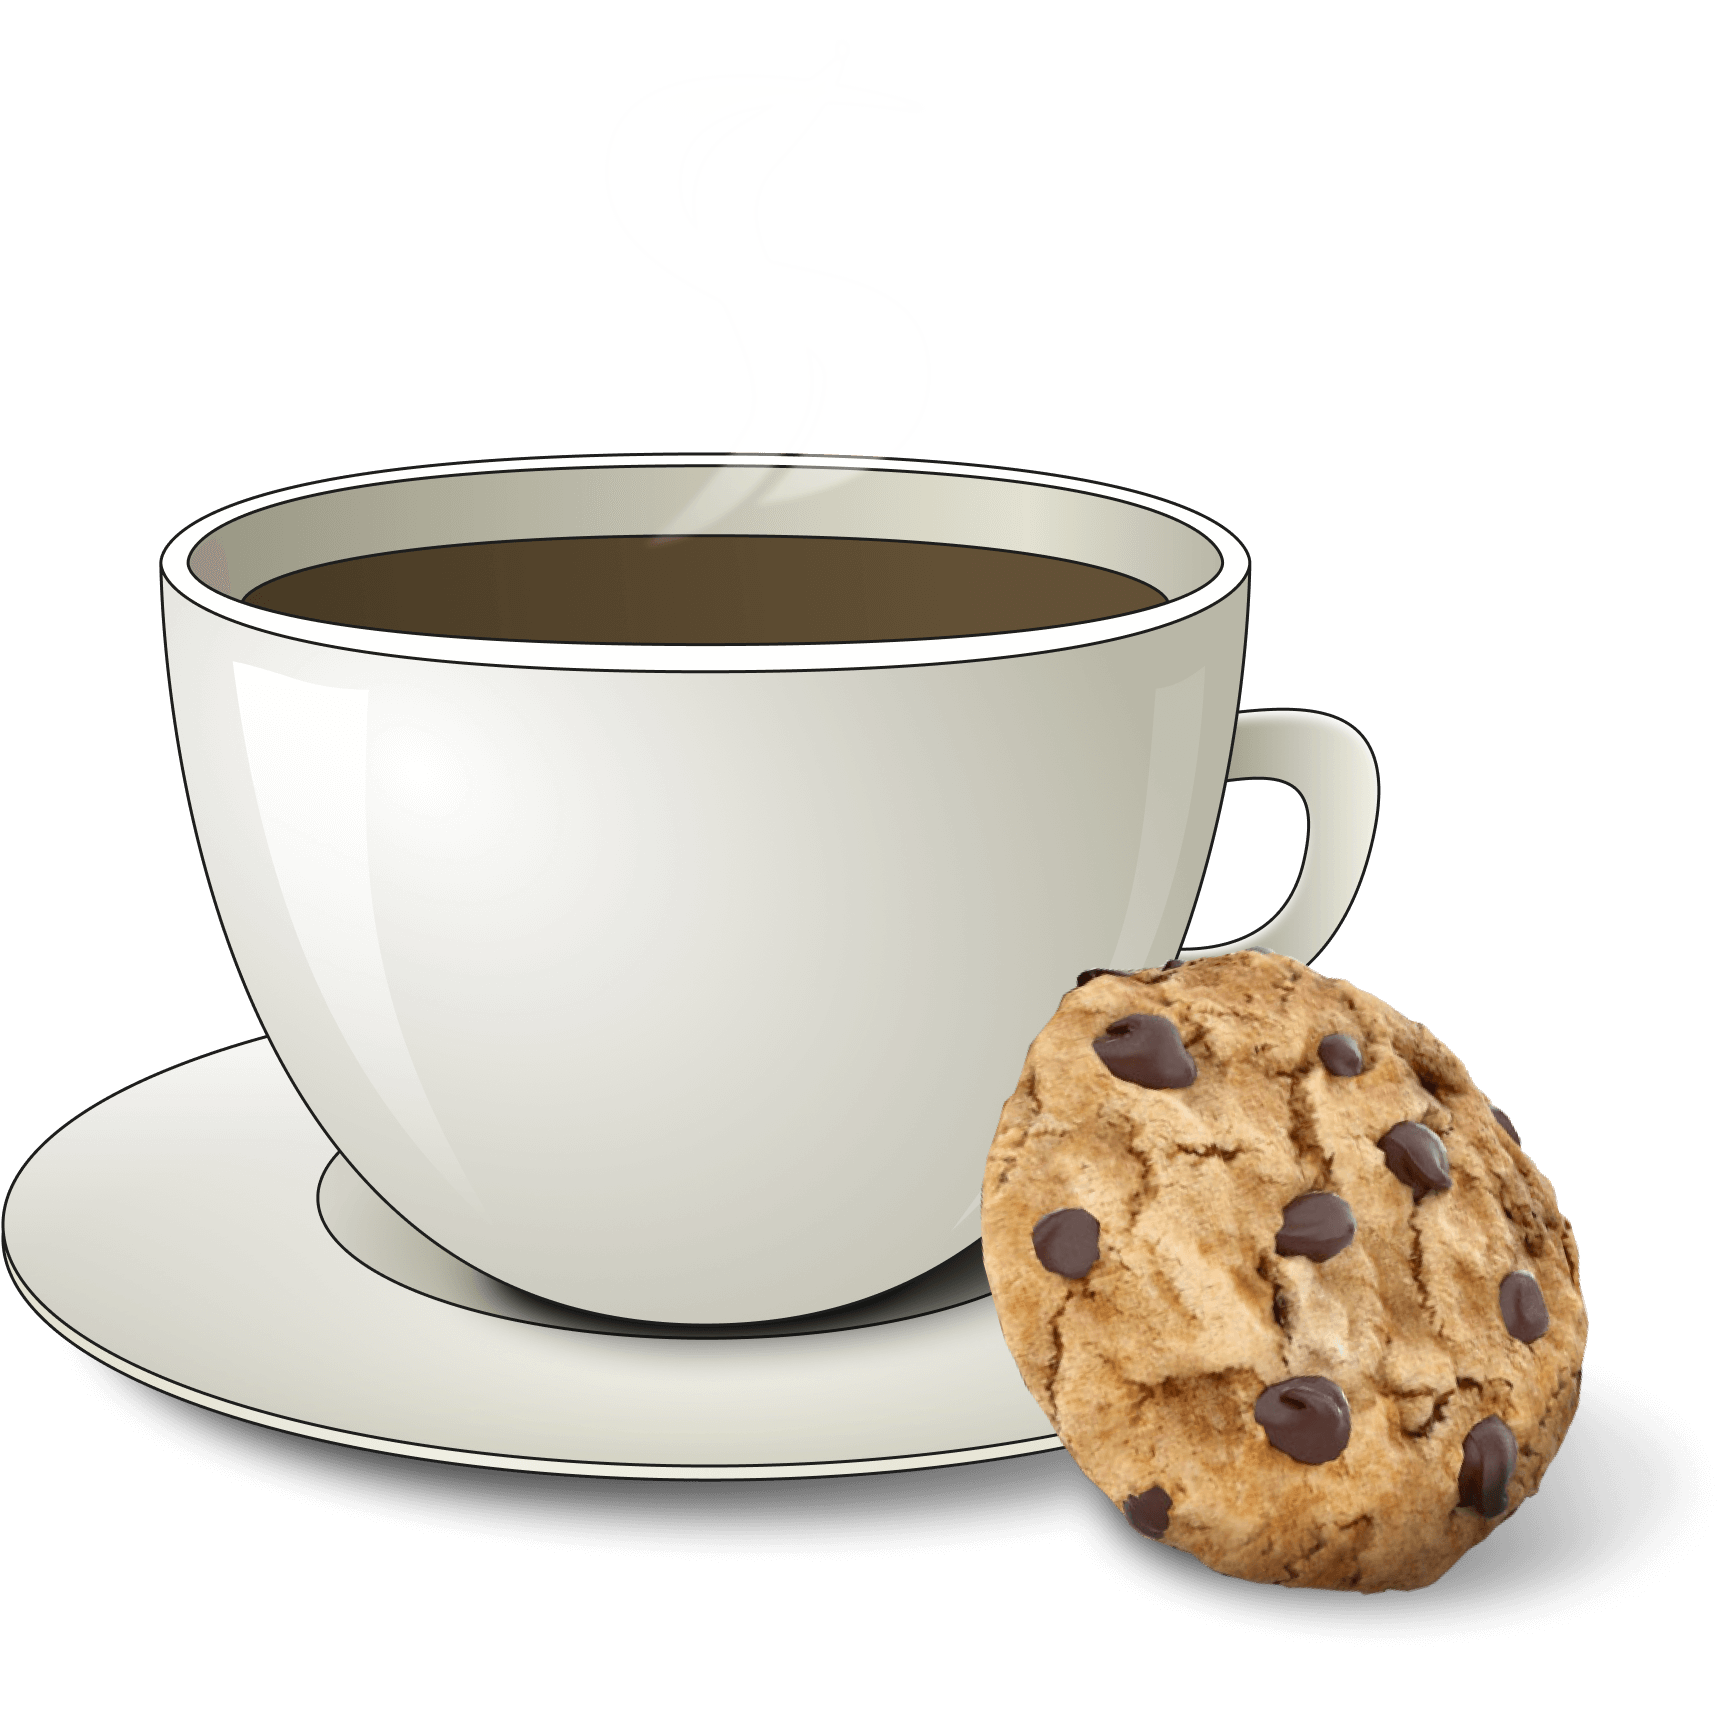 cup of coffee with cookie